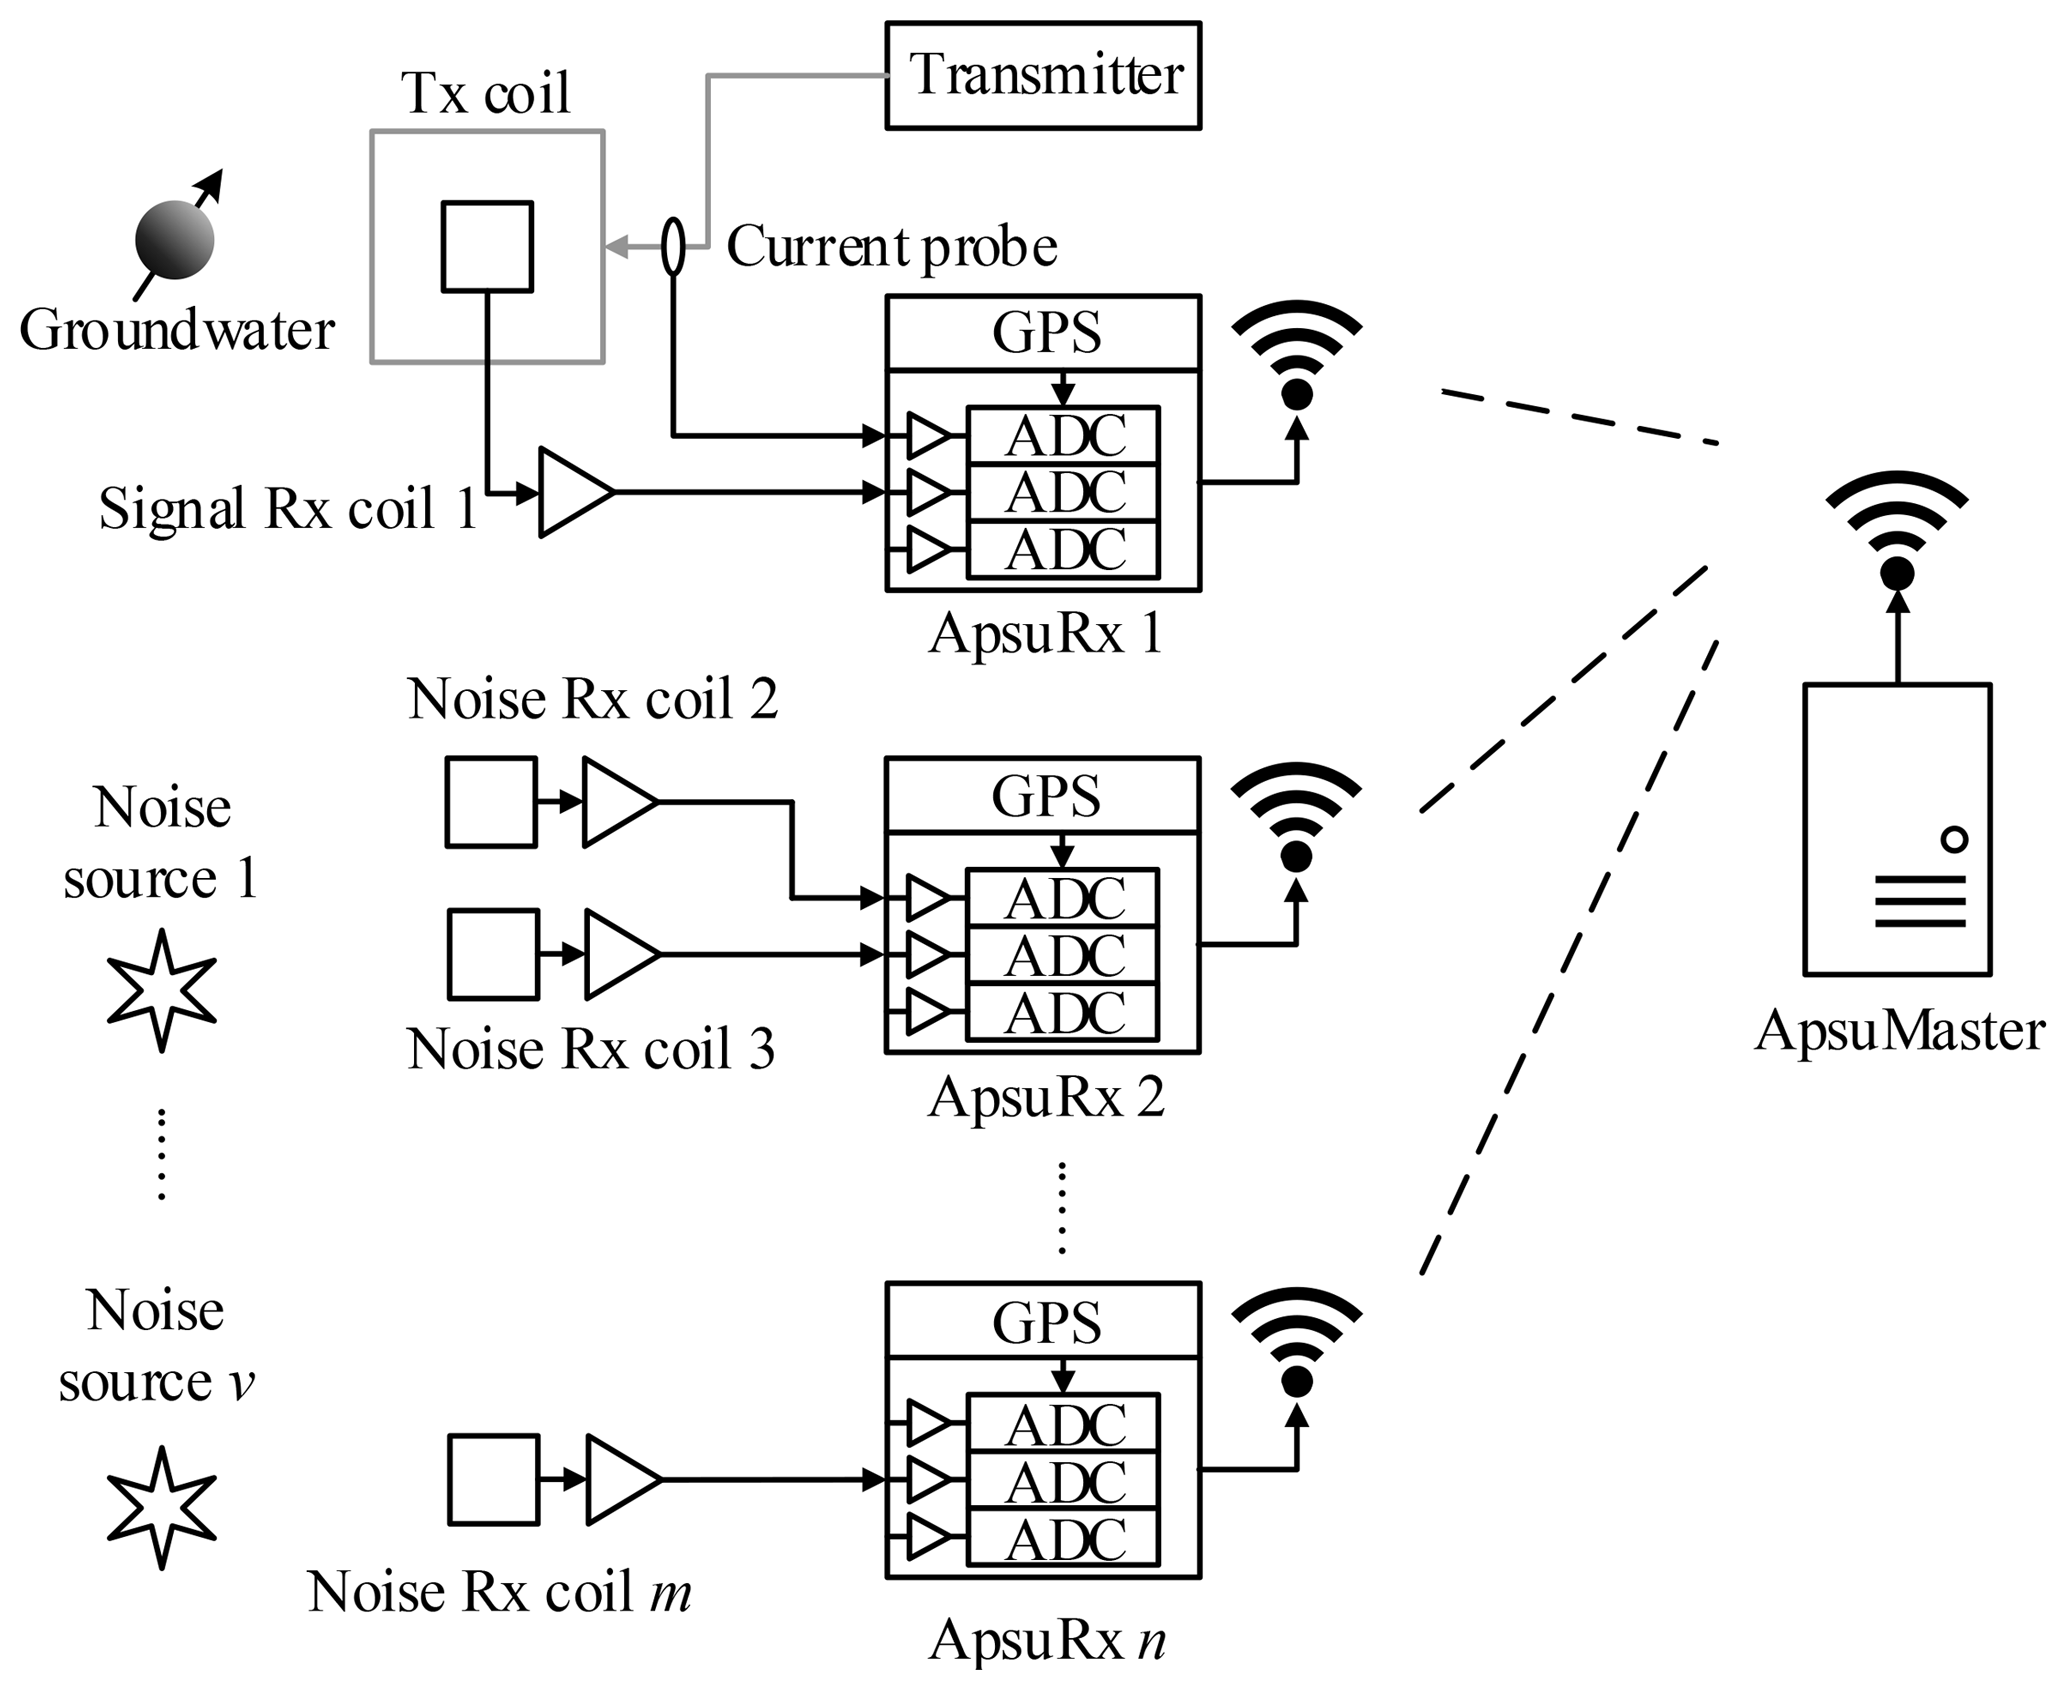 310b968bcd8 GI - Apsu: a wireless multichannel receiver system for surface ...